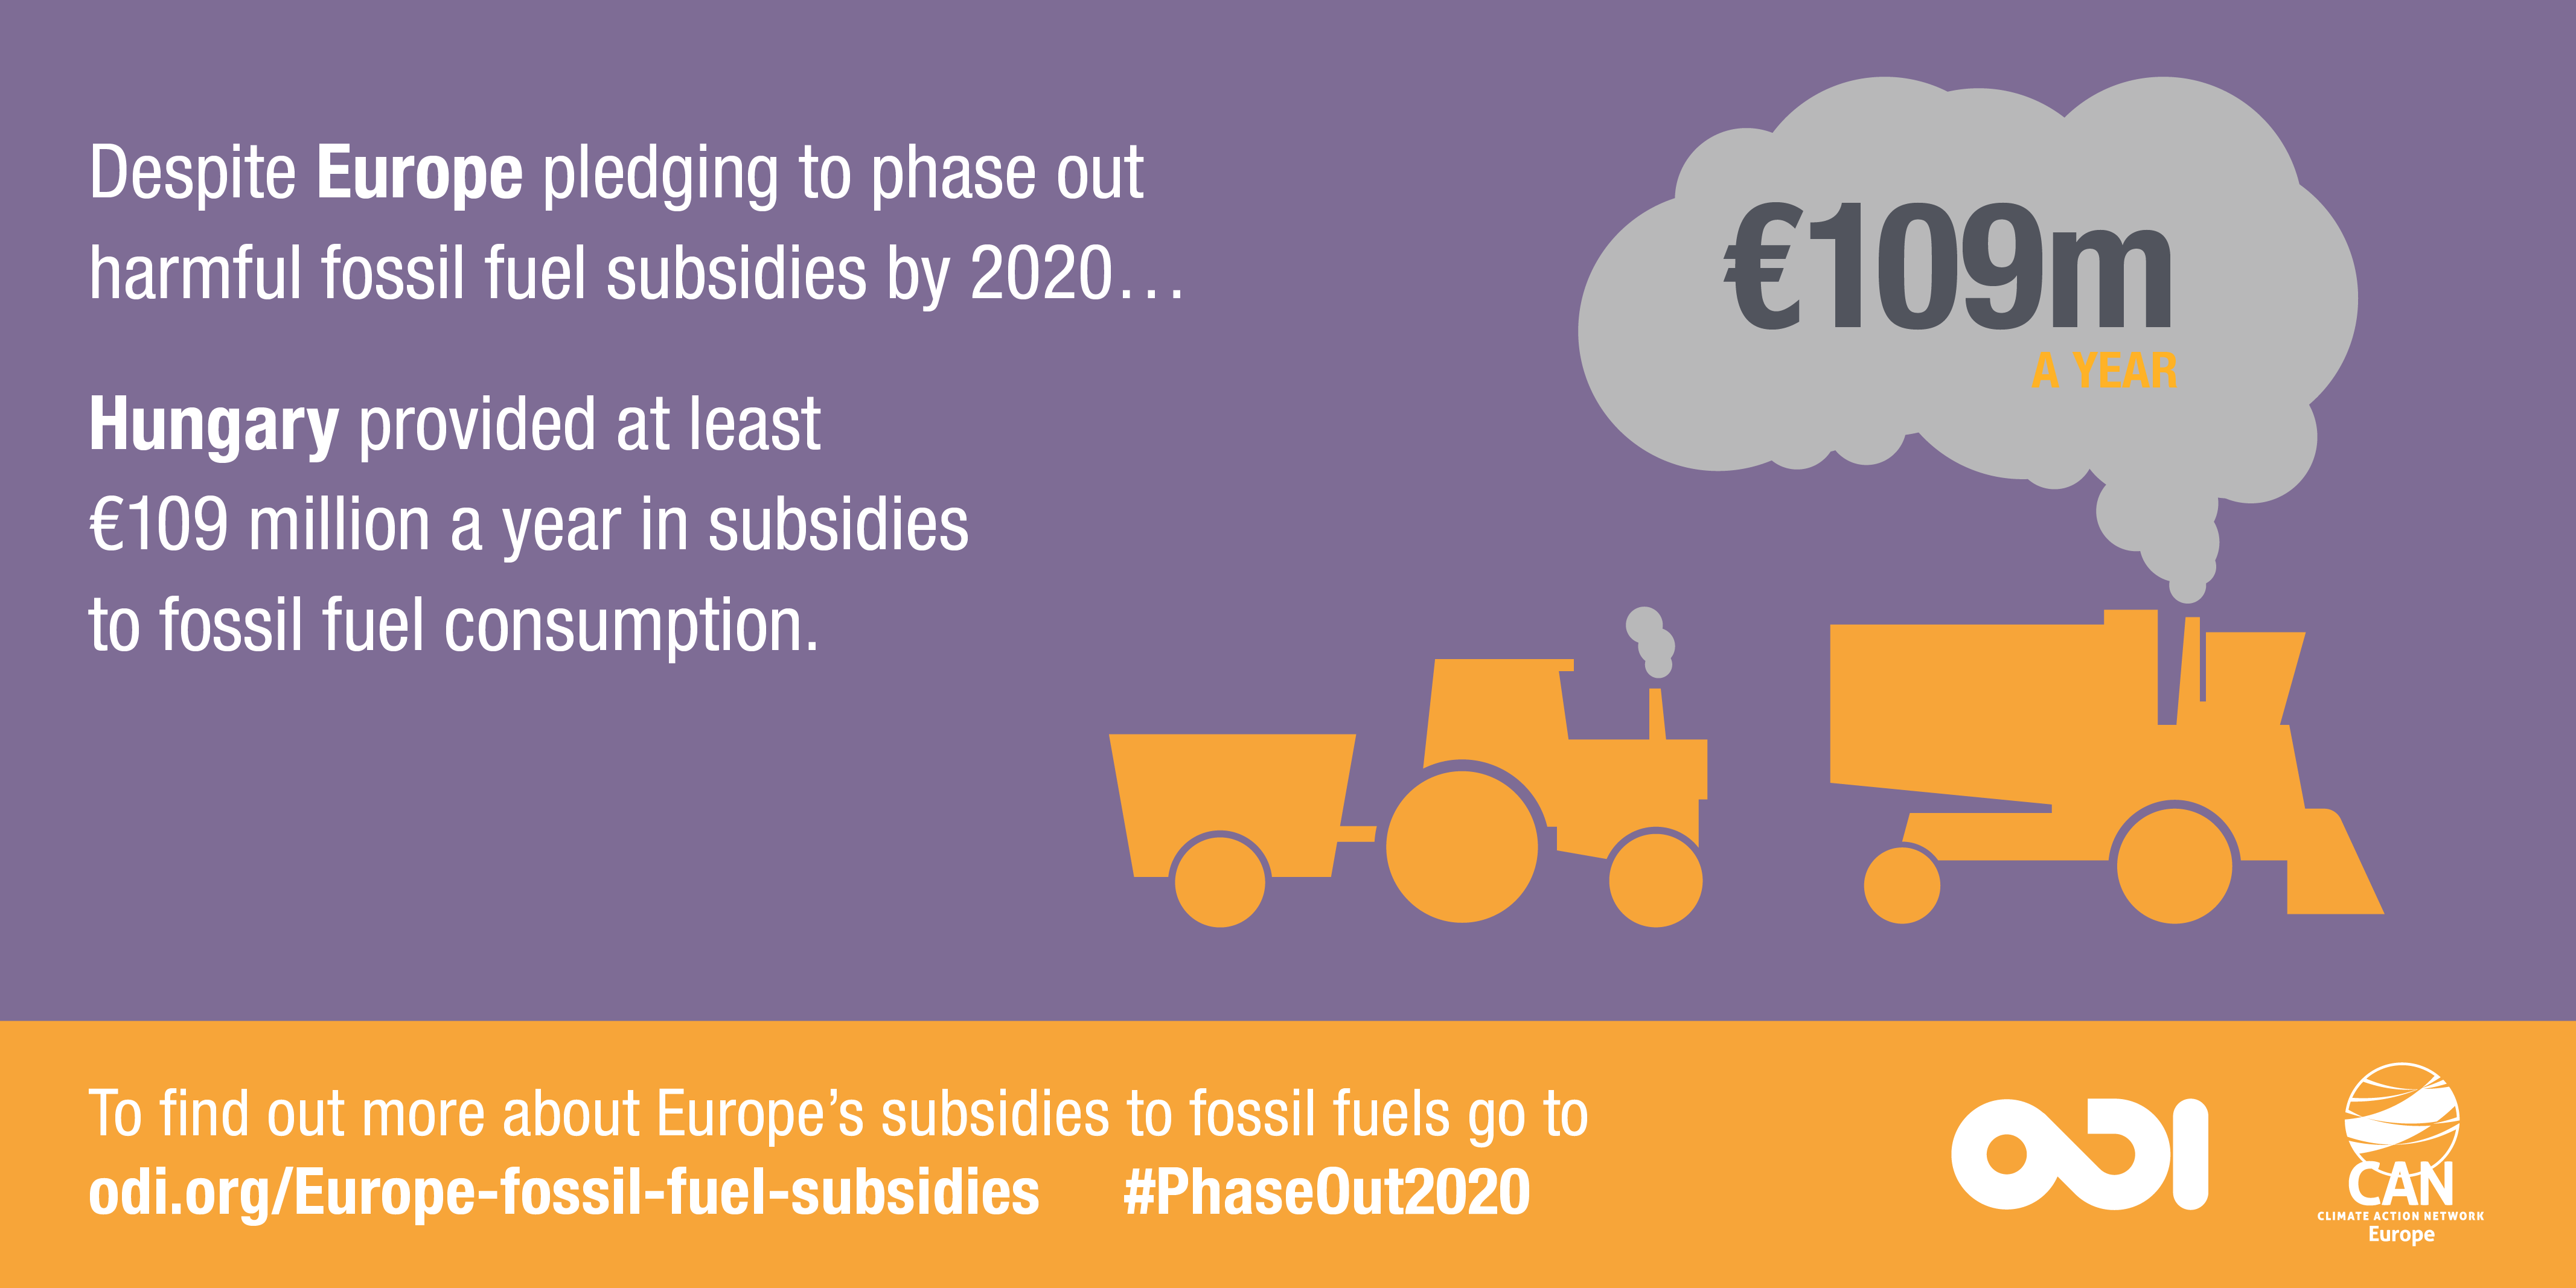 Infographic: Hungary provided at least €109 million a year in subsidies to fossil fuel consumption.